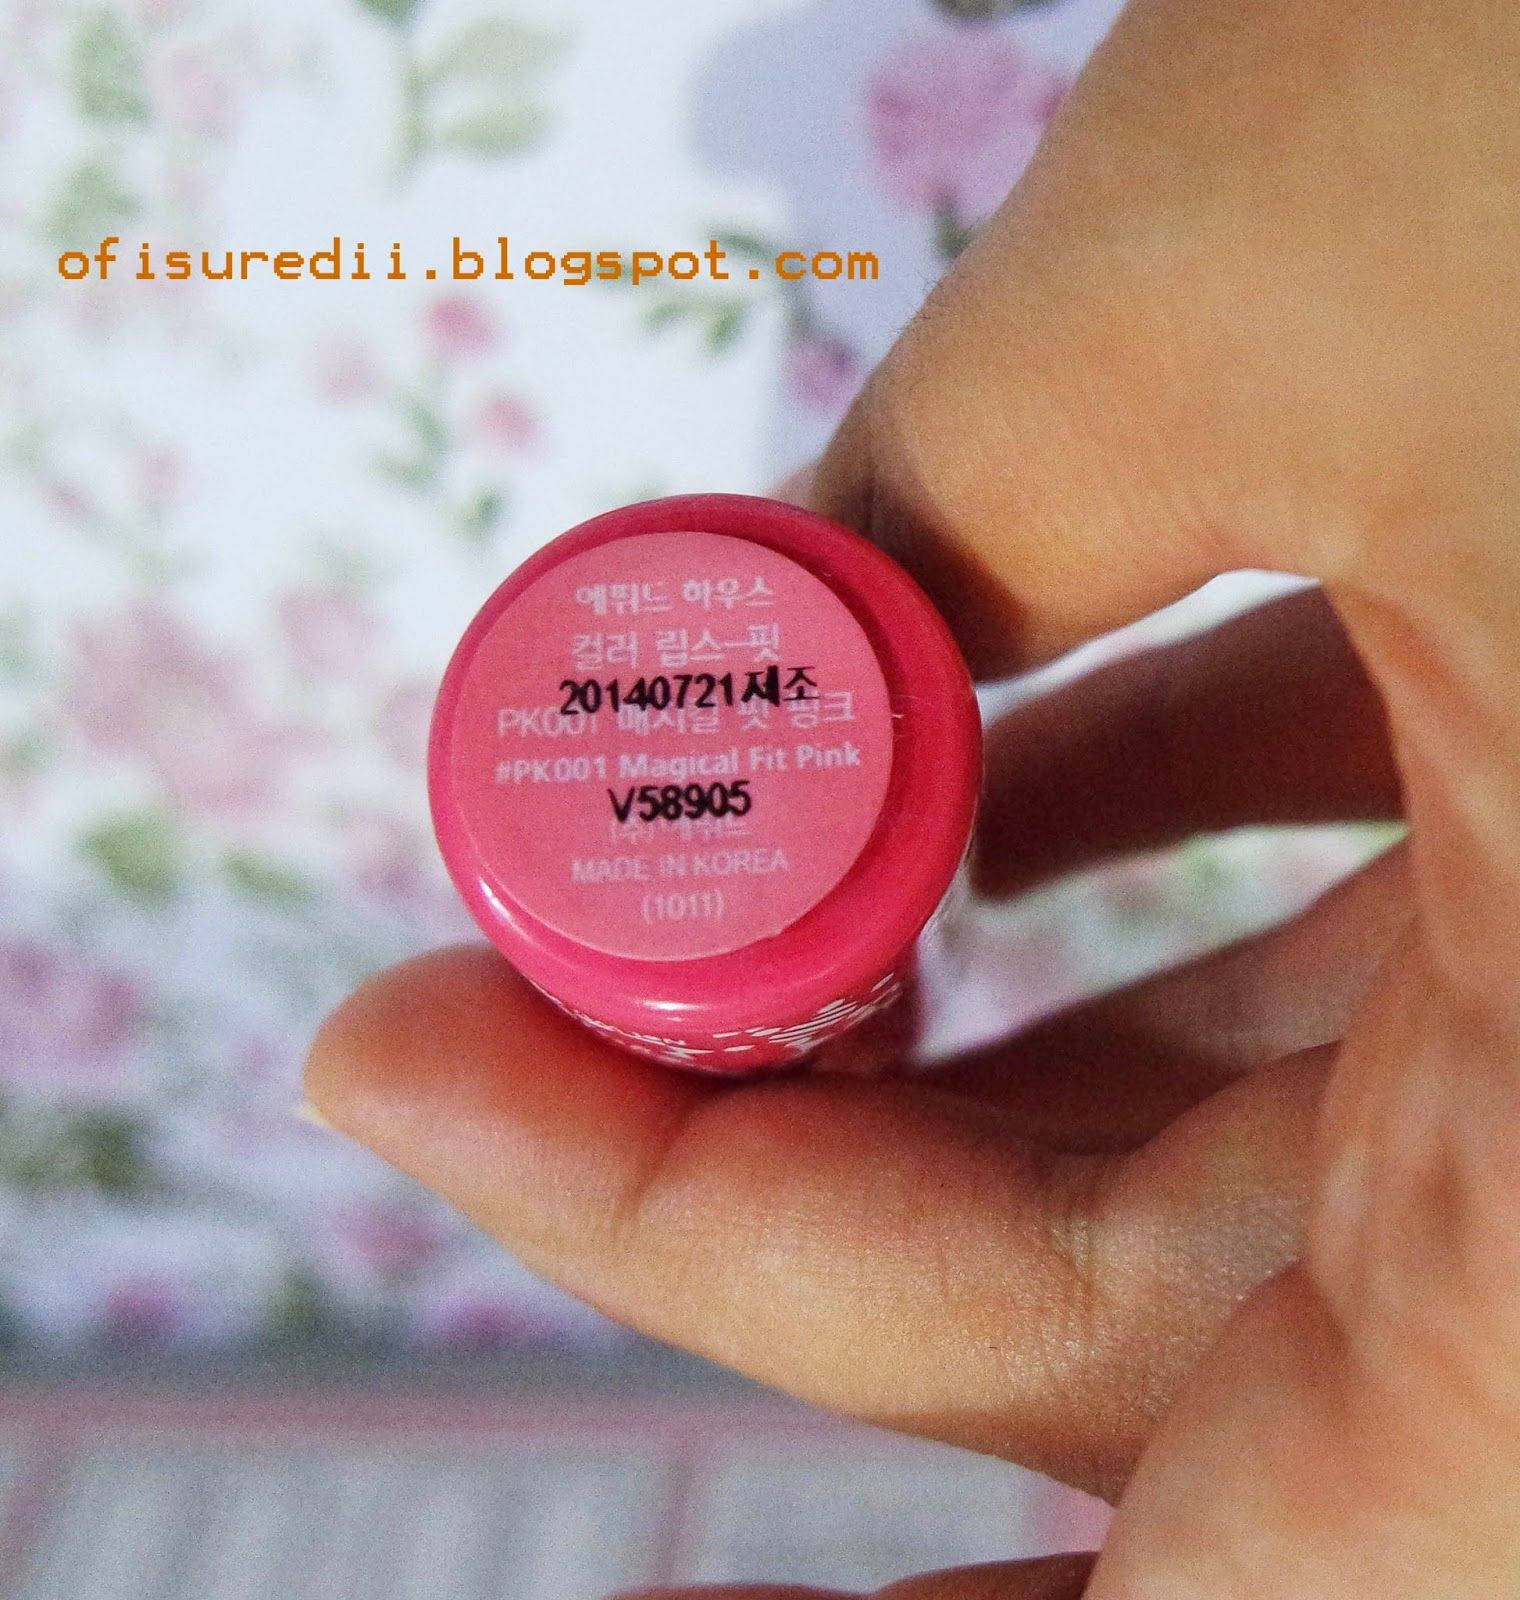 Etude House Color Lips Fit (PK001) Review - ofisu redii